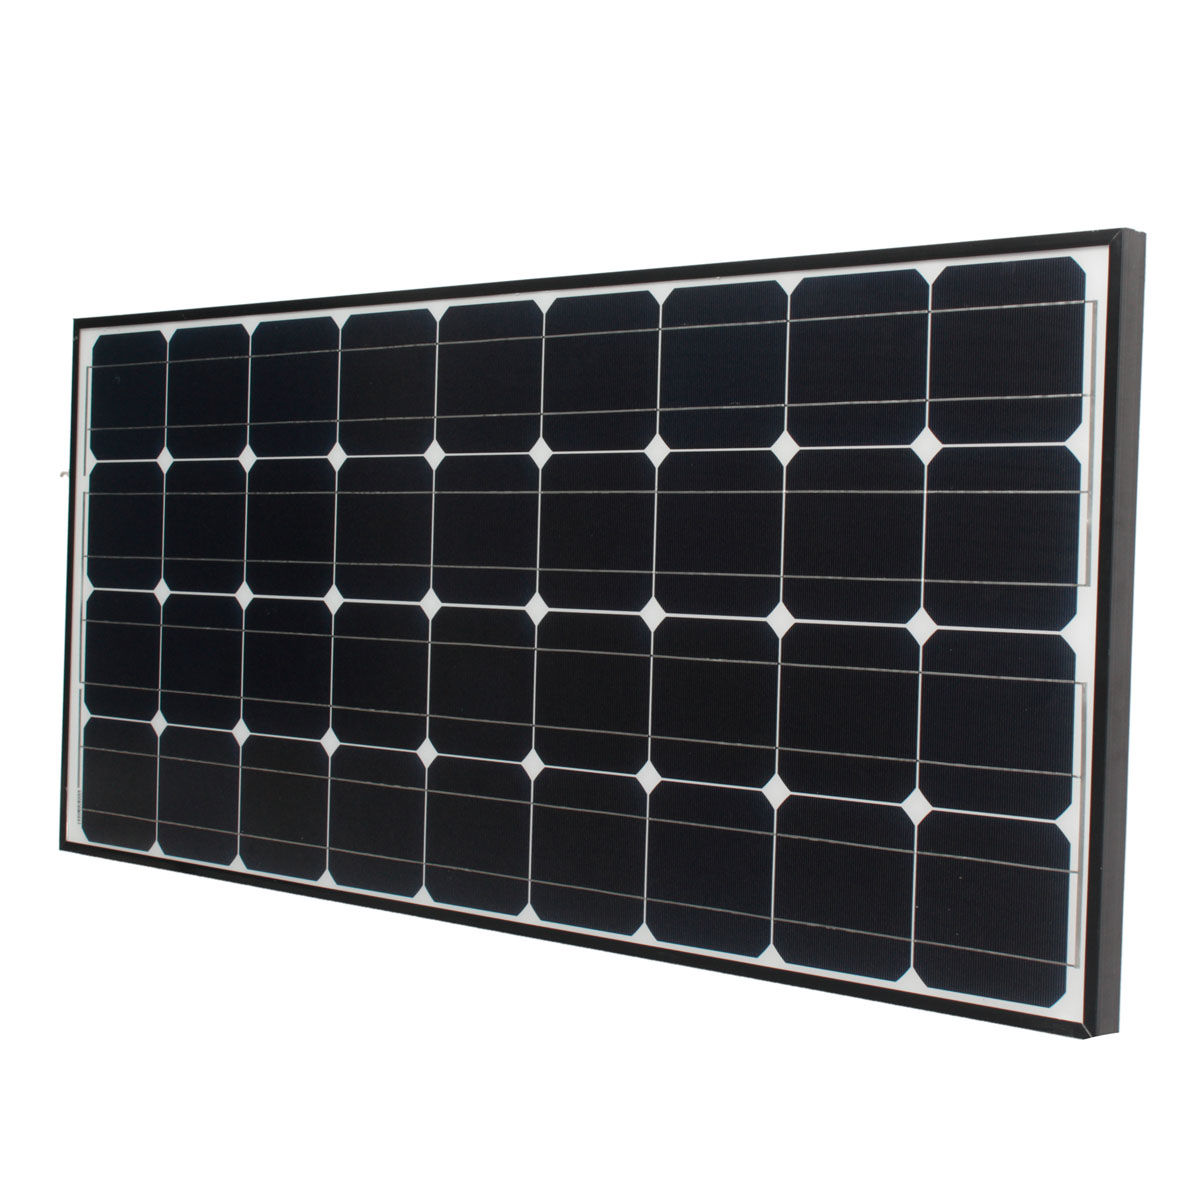 KINCO 18V 20W Monocrystalline Silicon Solar Panels With Silver/Black Frame High Conversion Efficiency DIy Solar Panel Battery sp 36 120w 12v semi flexible monocrystalline solar panel waterproof high conversion efficiency for rv boat car 1 5m cable